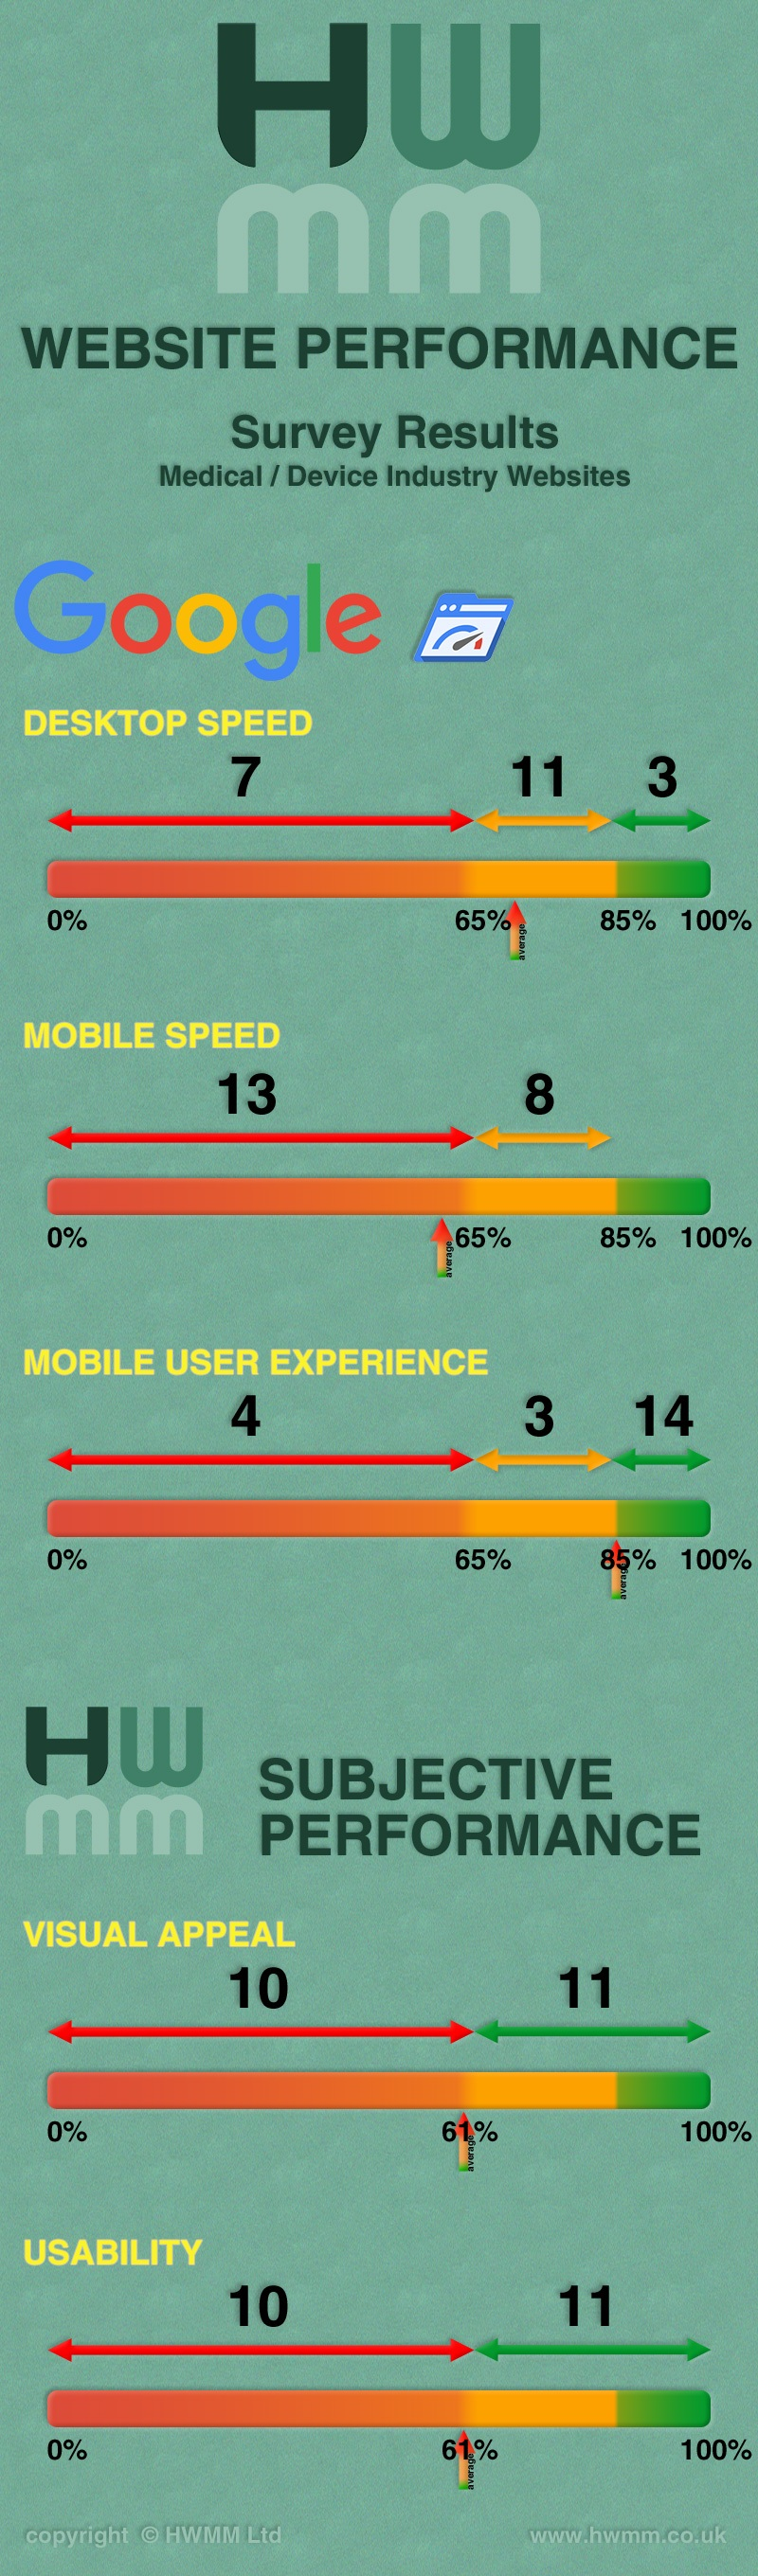 Medical Device Websites Performance - Infographic